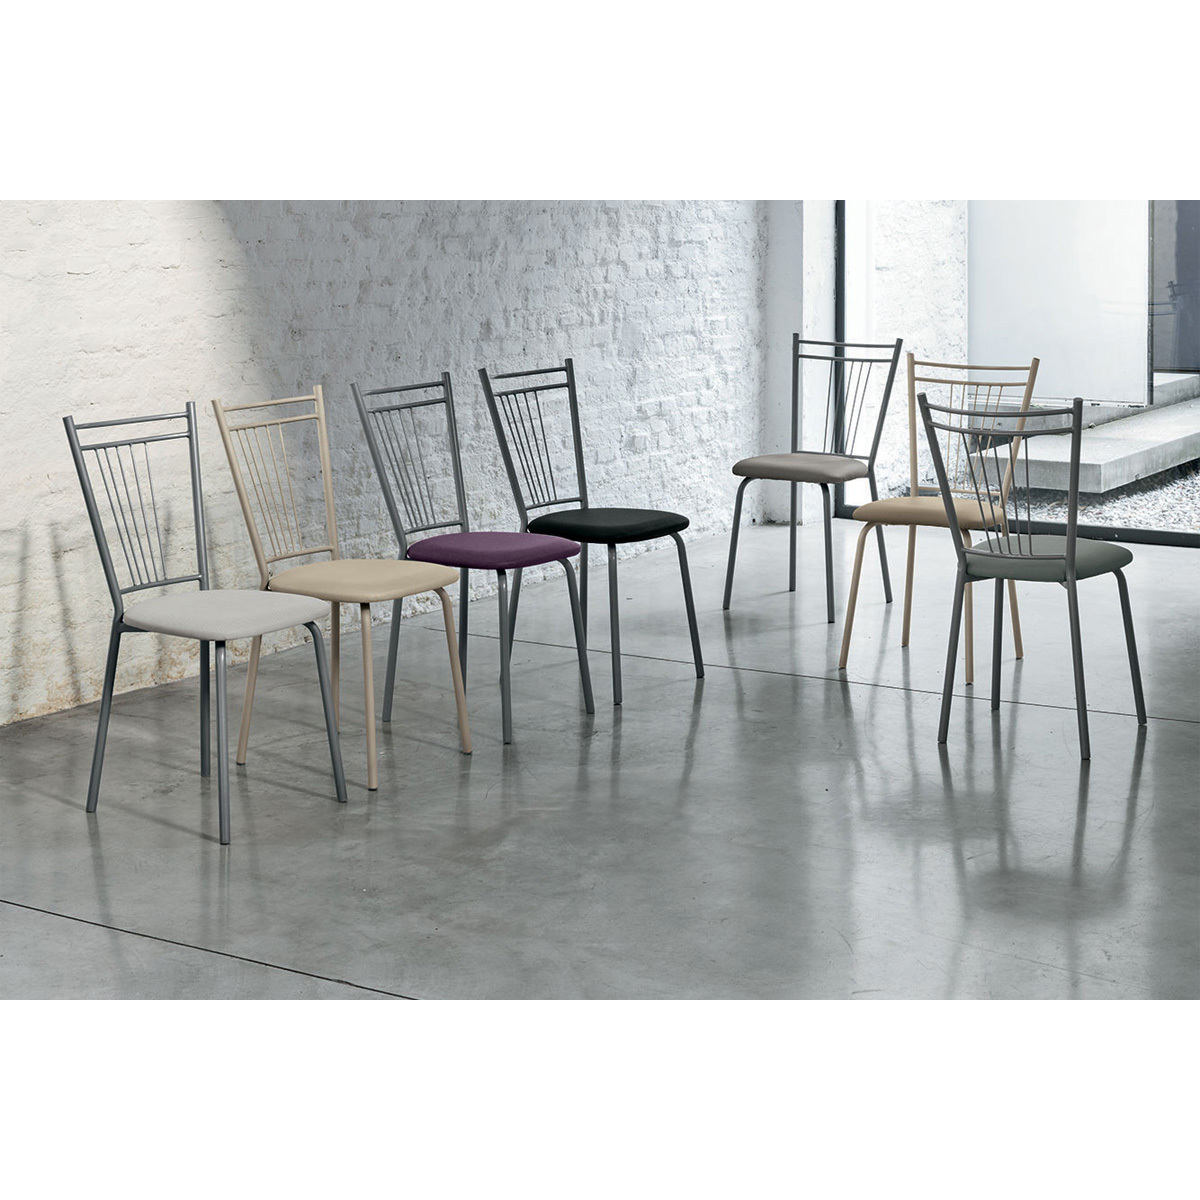 Photos 2: Target Point Chair in metal and net / eco-leather / straw SE104 - GARDA